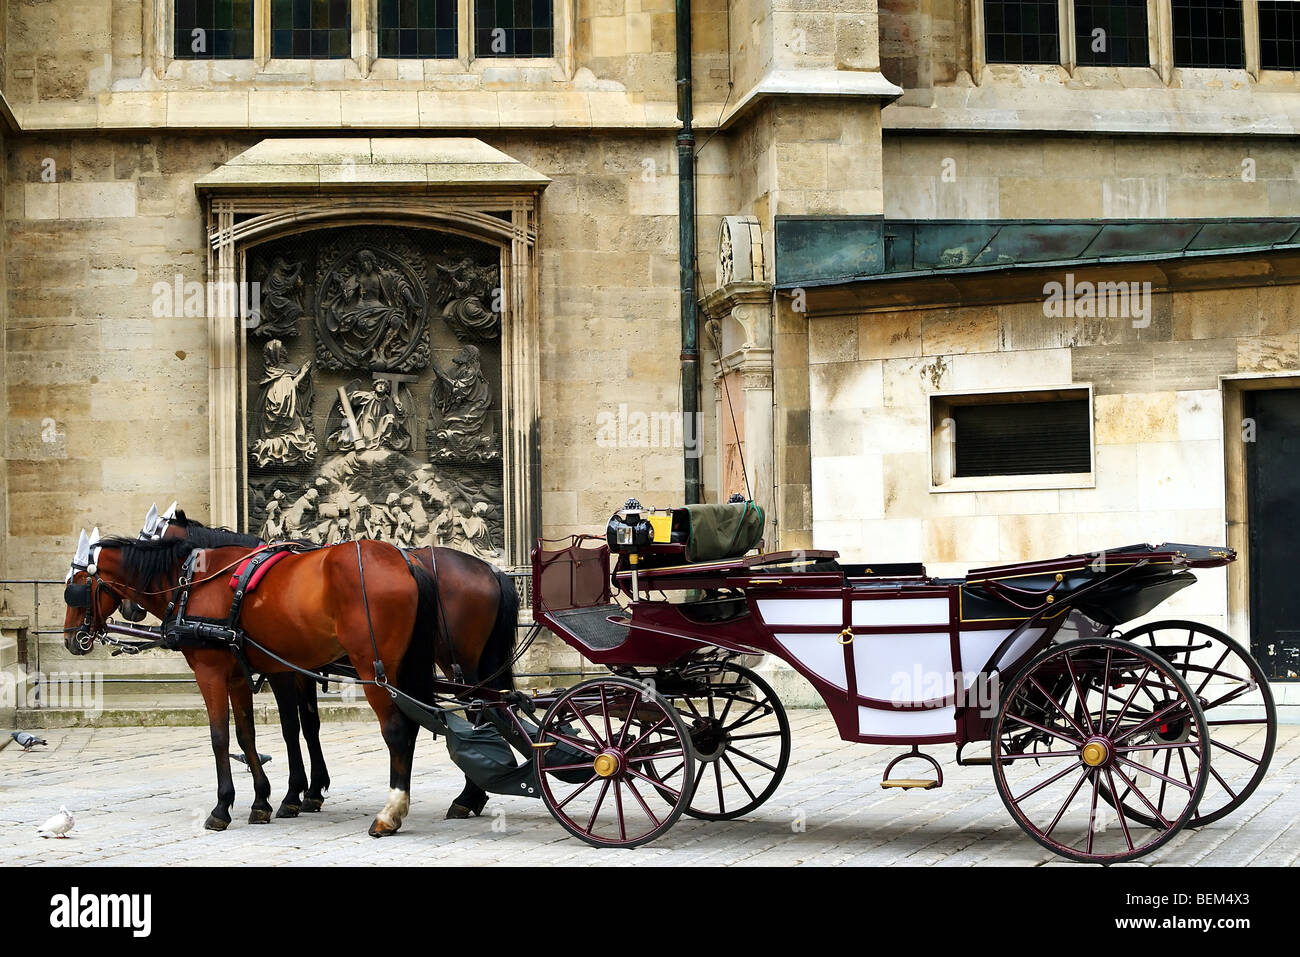 horses and coach on a street with old building in background - Stock Image